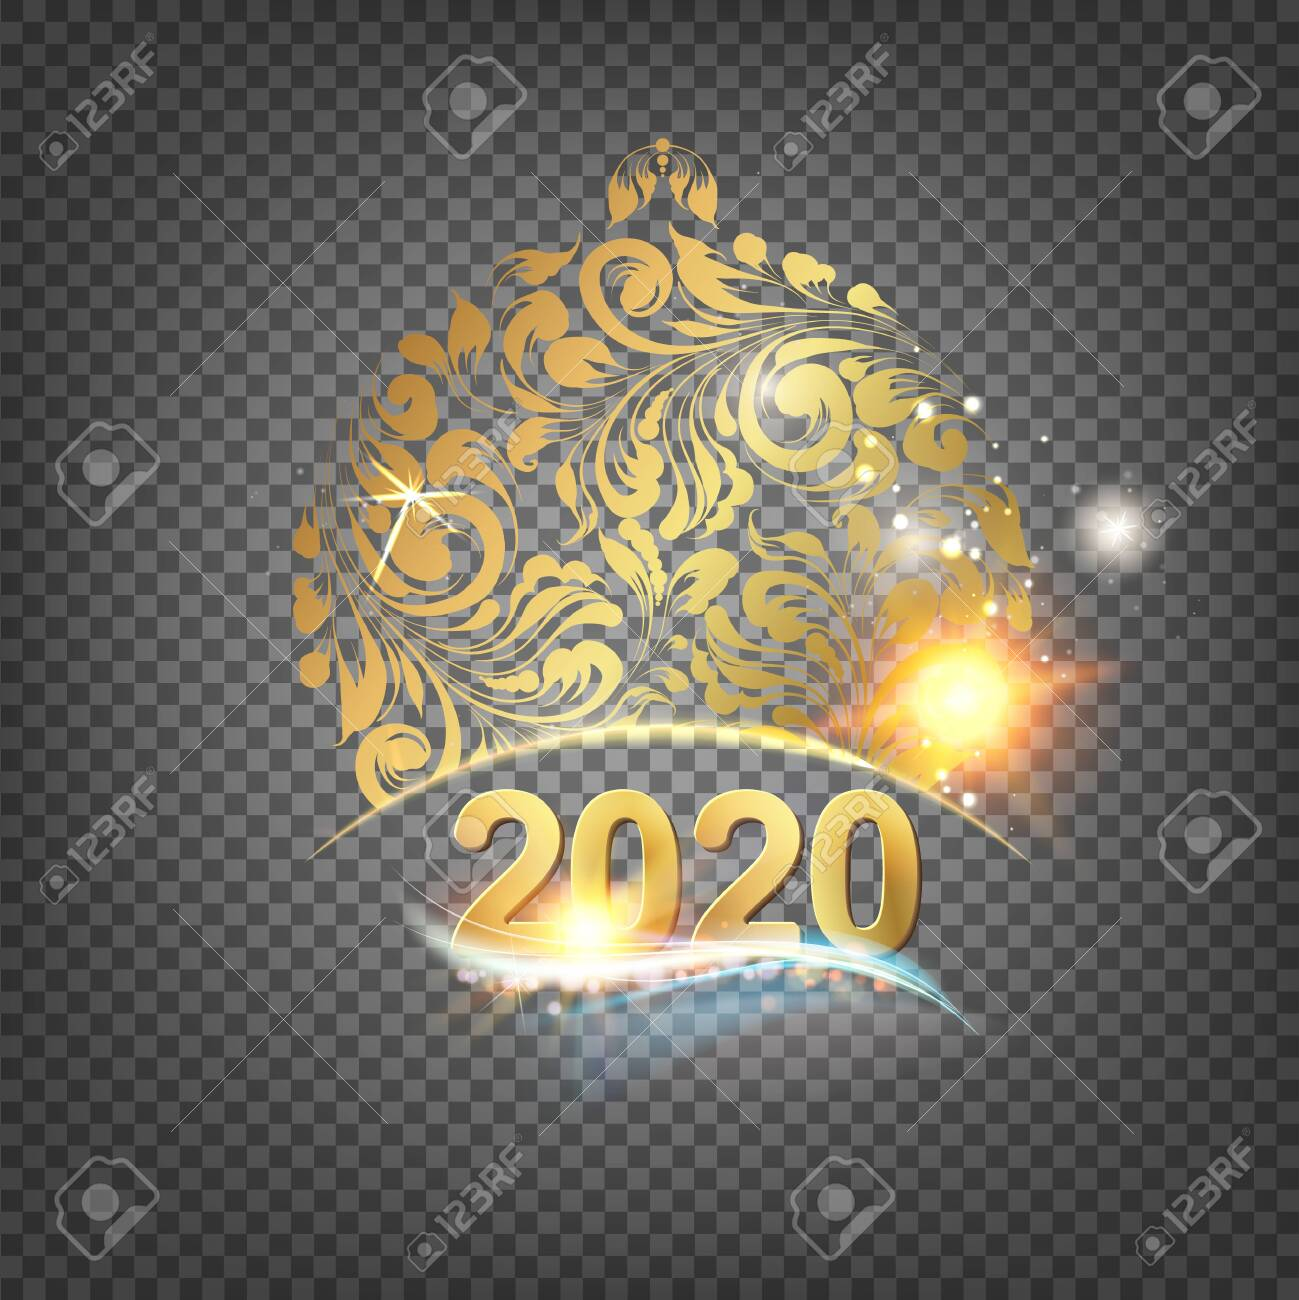 Christmas 2020 Graphic Transparent Golden Christmas Sphere Decoration With Glitter And Sign 2020